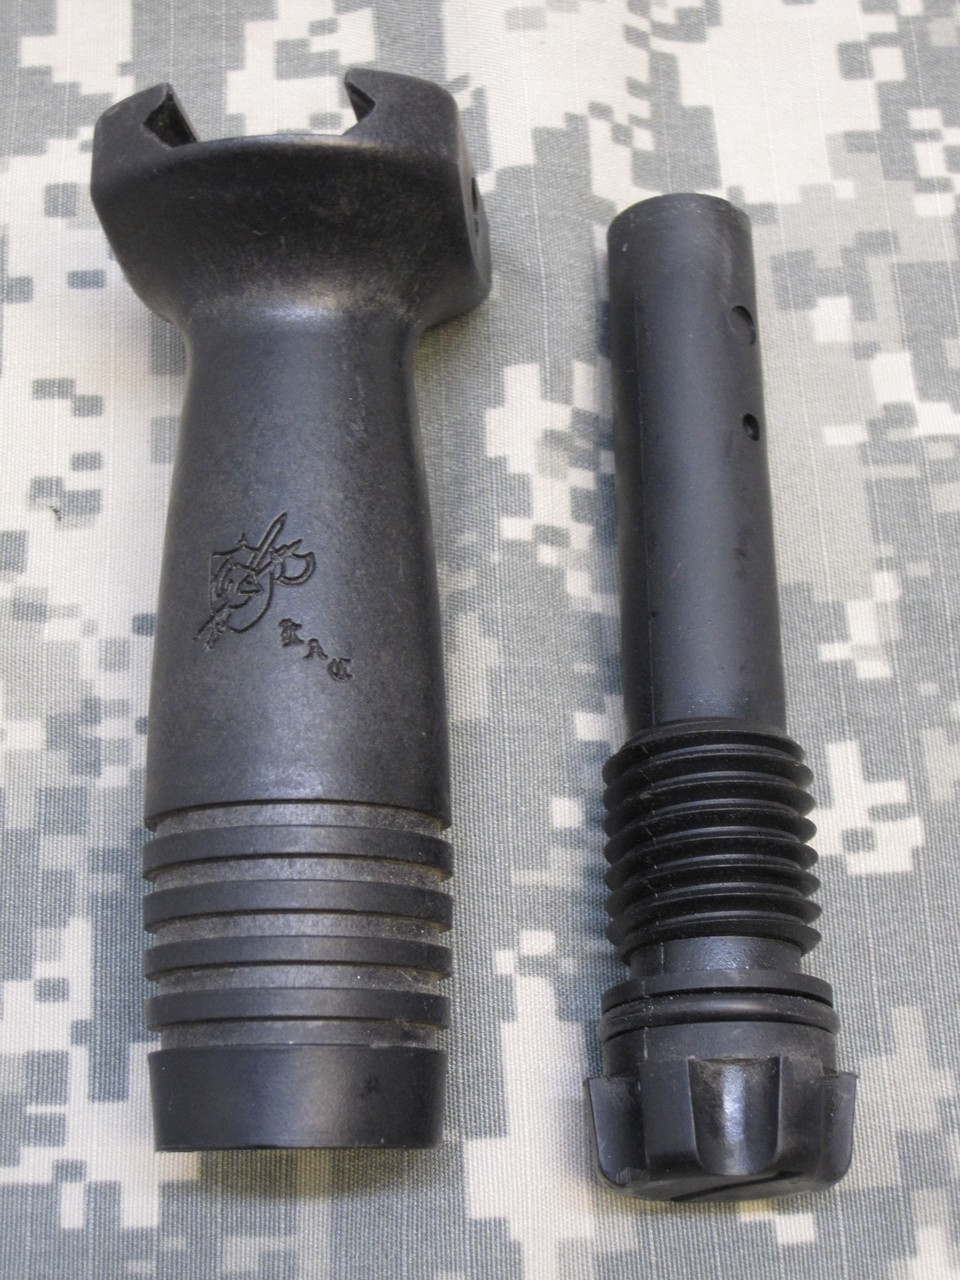 KNIGHTS ARMAMENT CO. PICATINNY RAIL FORWARD FRONT GRIP BROOMSTICK HANDLE KAC